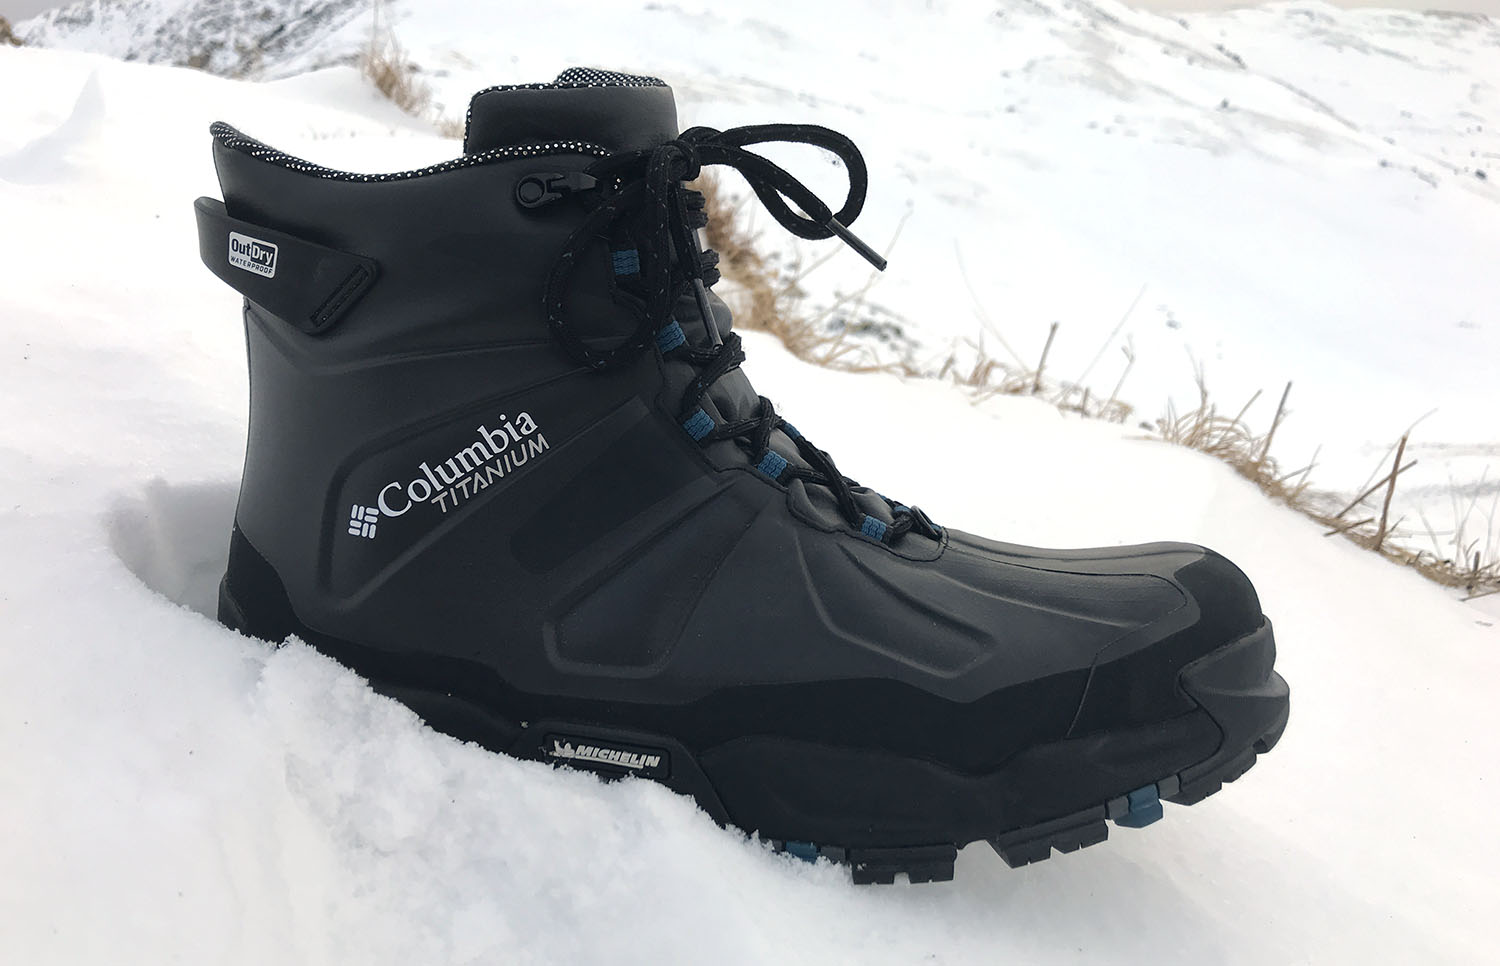 90e1013a Best Winter Boots for Men | GearJunkie